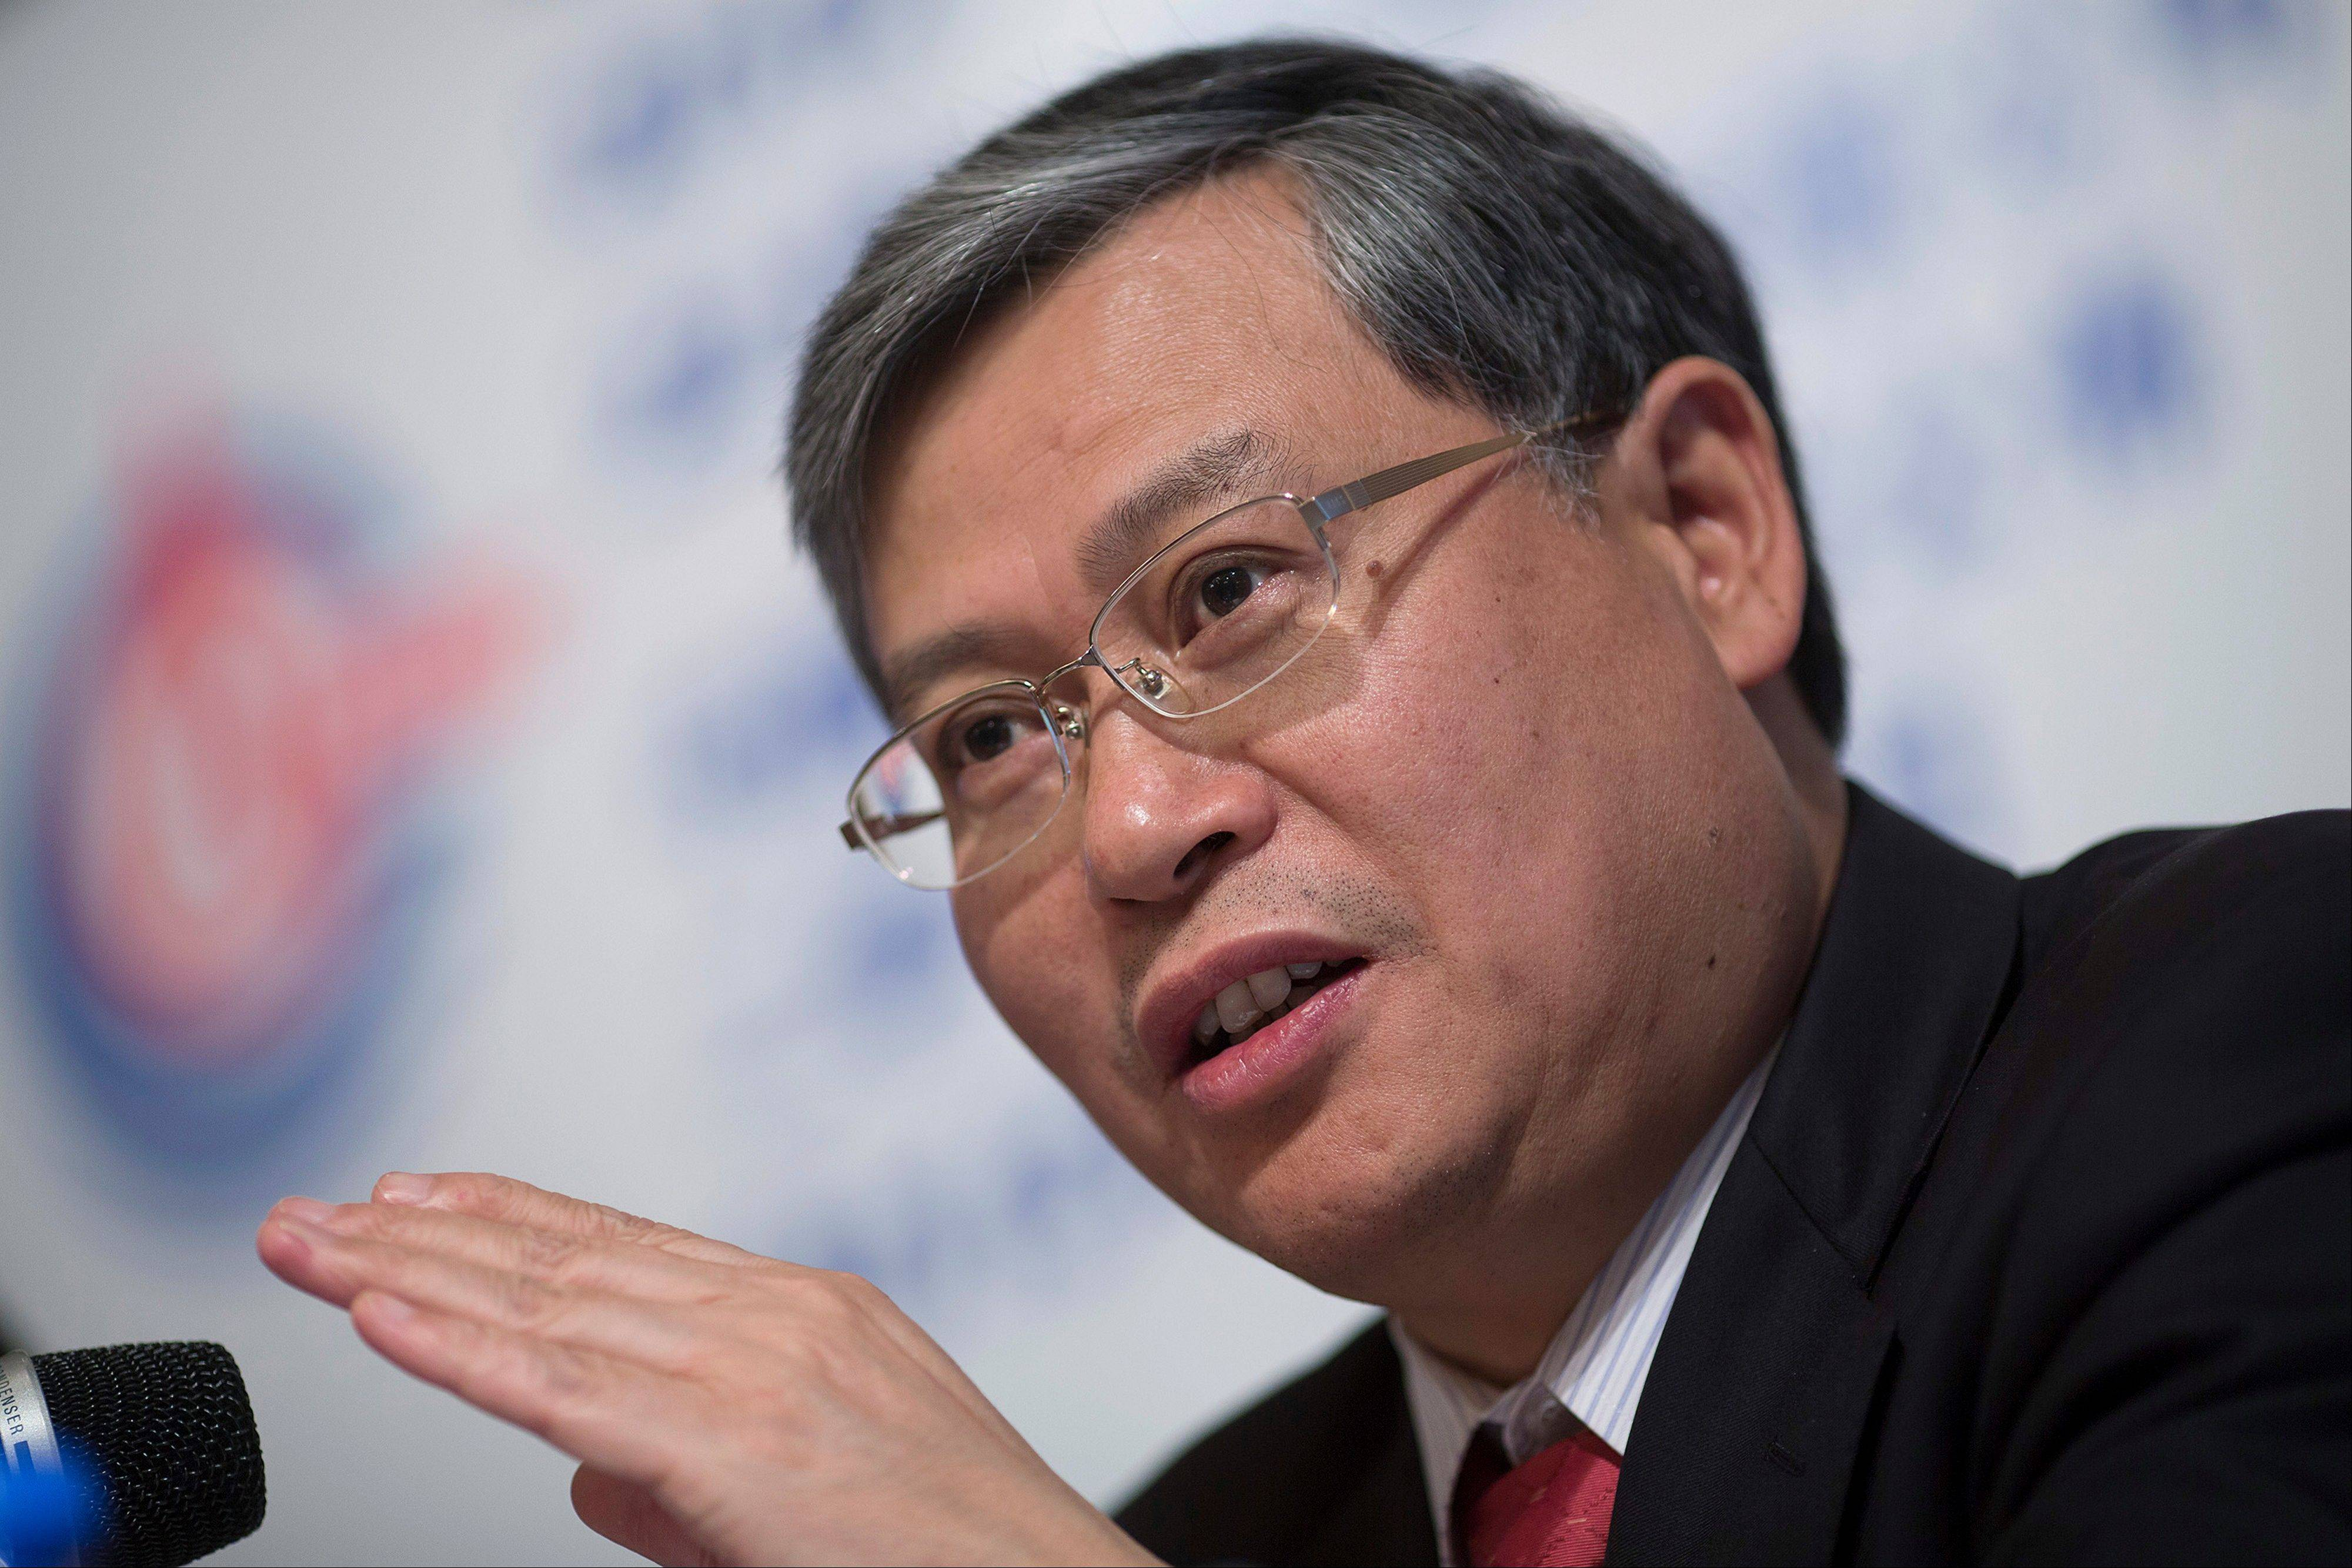 Li Fanrong, chief executive officer of CNOOC Ltd., gestures while speaking during a news conference in Hong Kong, China, on Friday, March 22, 2013. CNOOC reported 2012 profit that missed analyst estimates as China�s biggest offshore oil producer spent more to explore and revive stalled output growth.